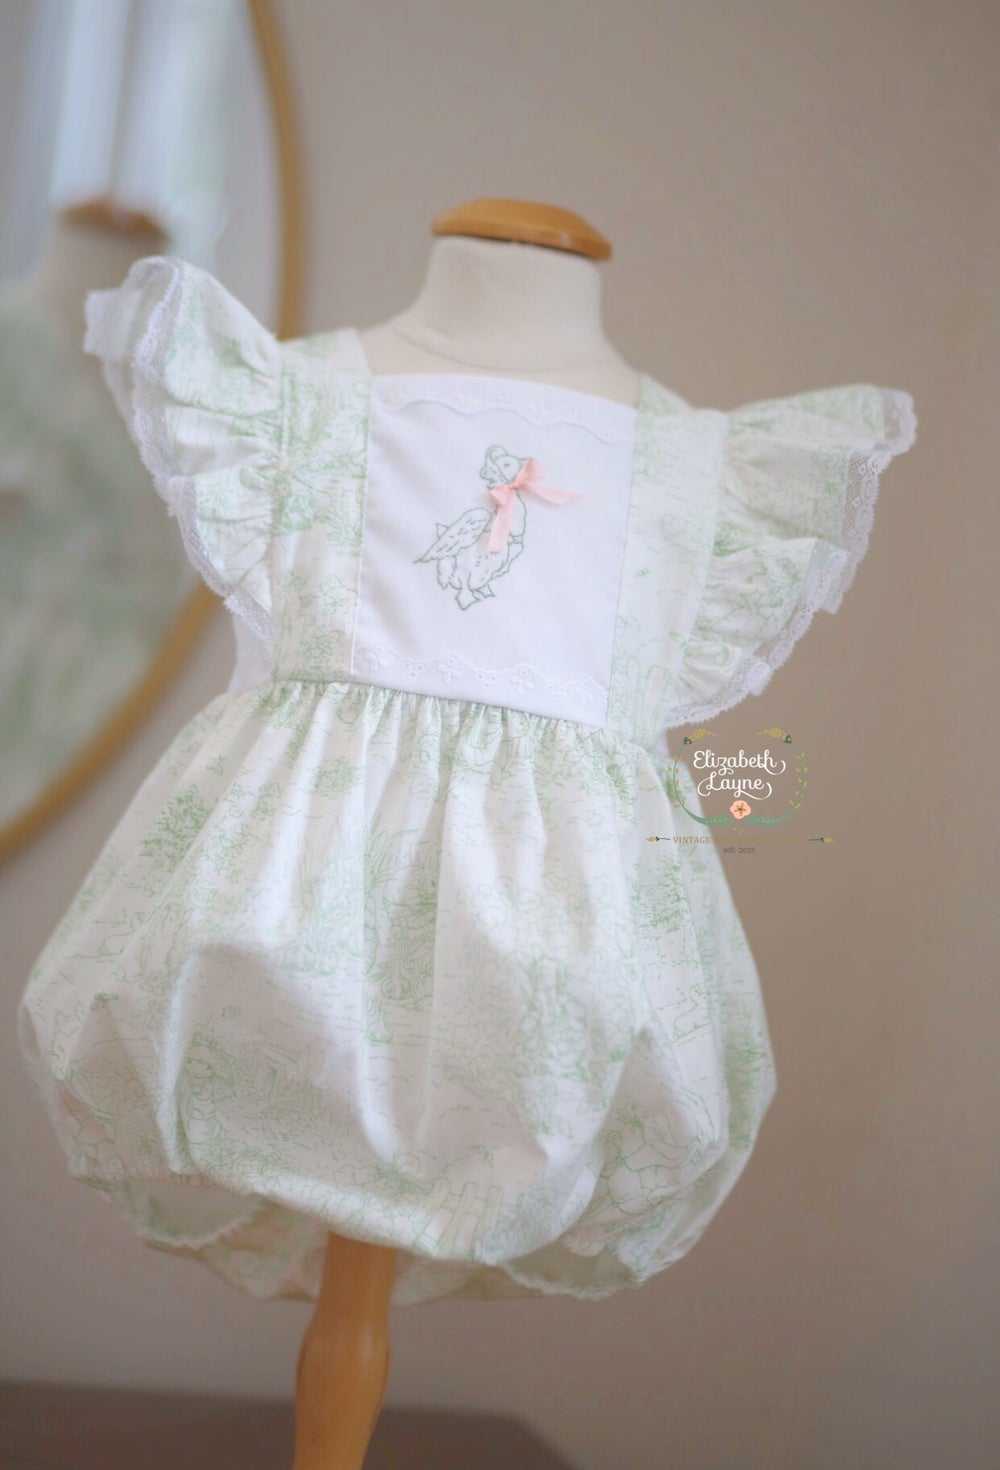 Image of Spring Green Toile Jemima Puddle Duck Legacy Bubble